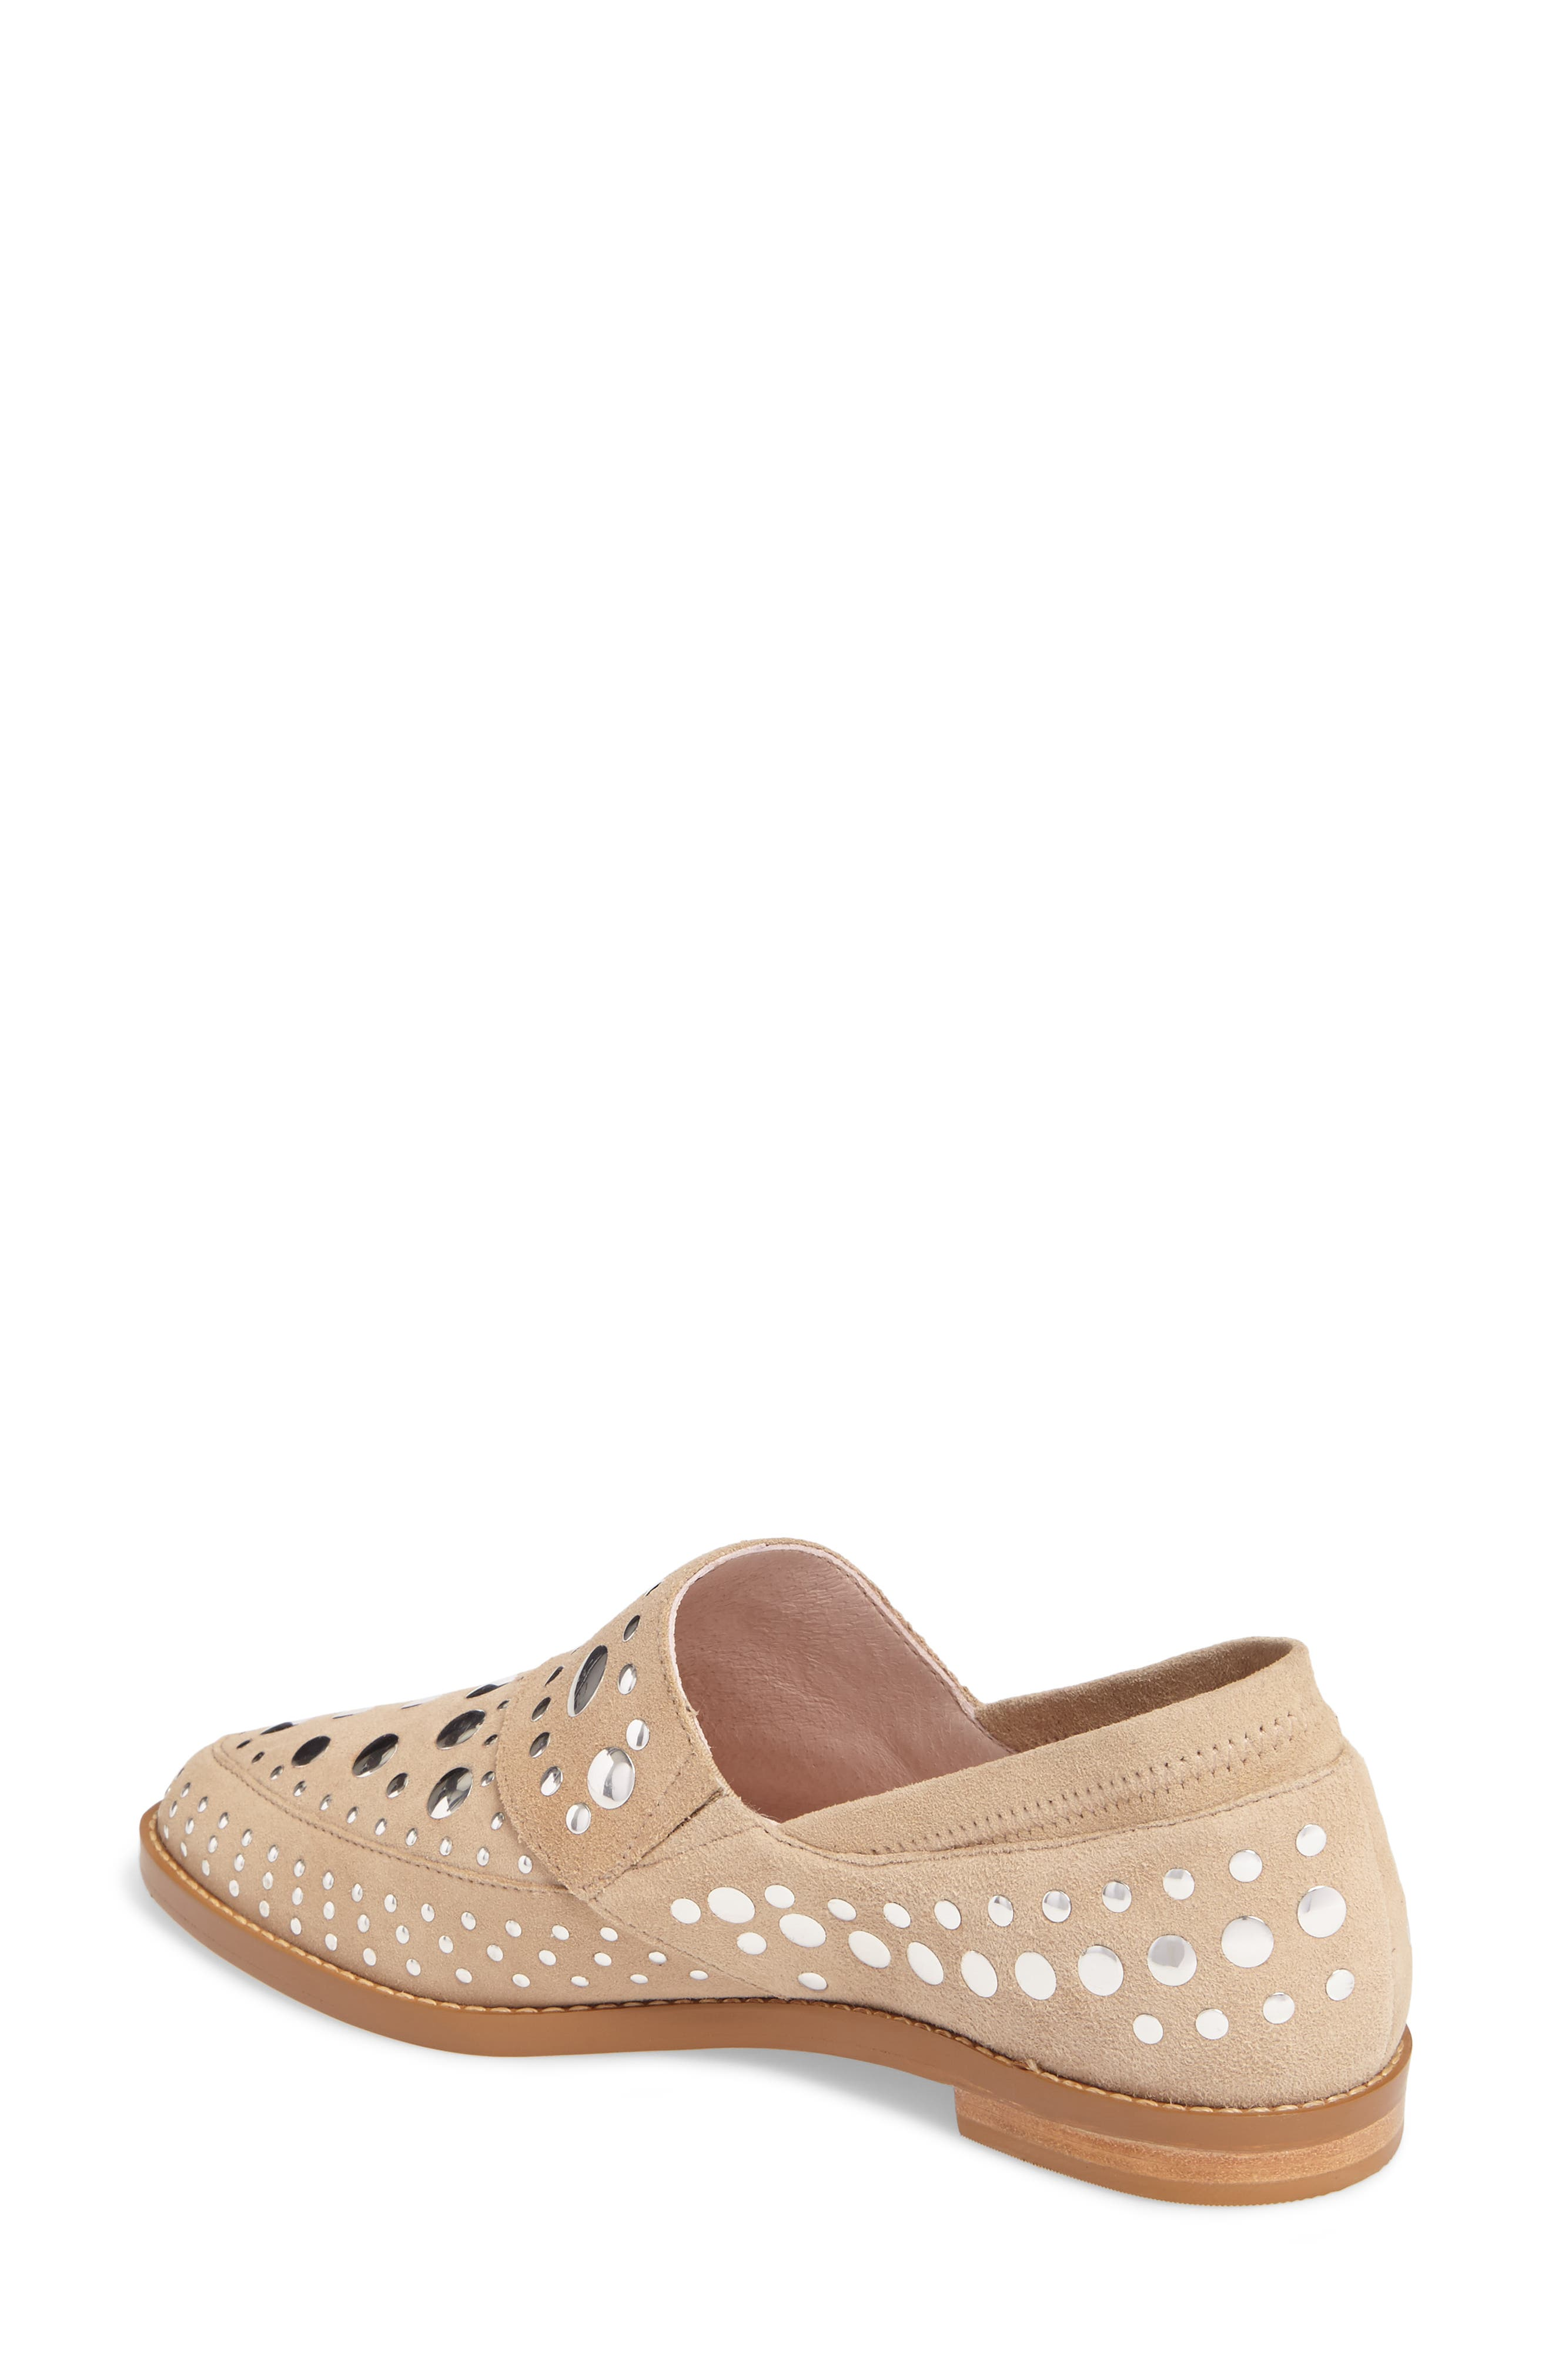 Ping Studded Loafer,                             Alternate thumbnail 6, color,